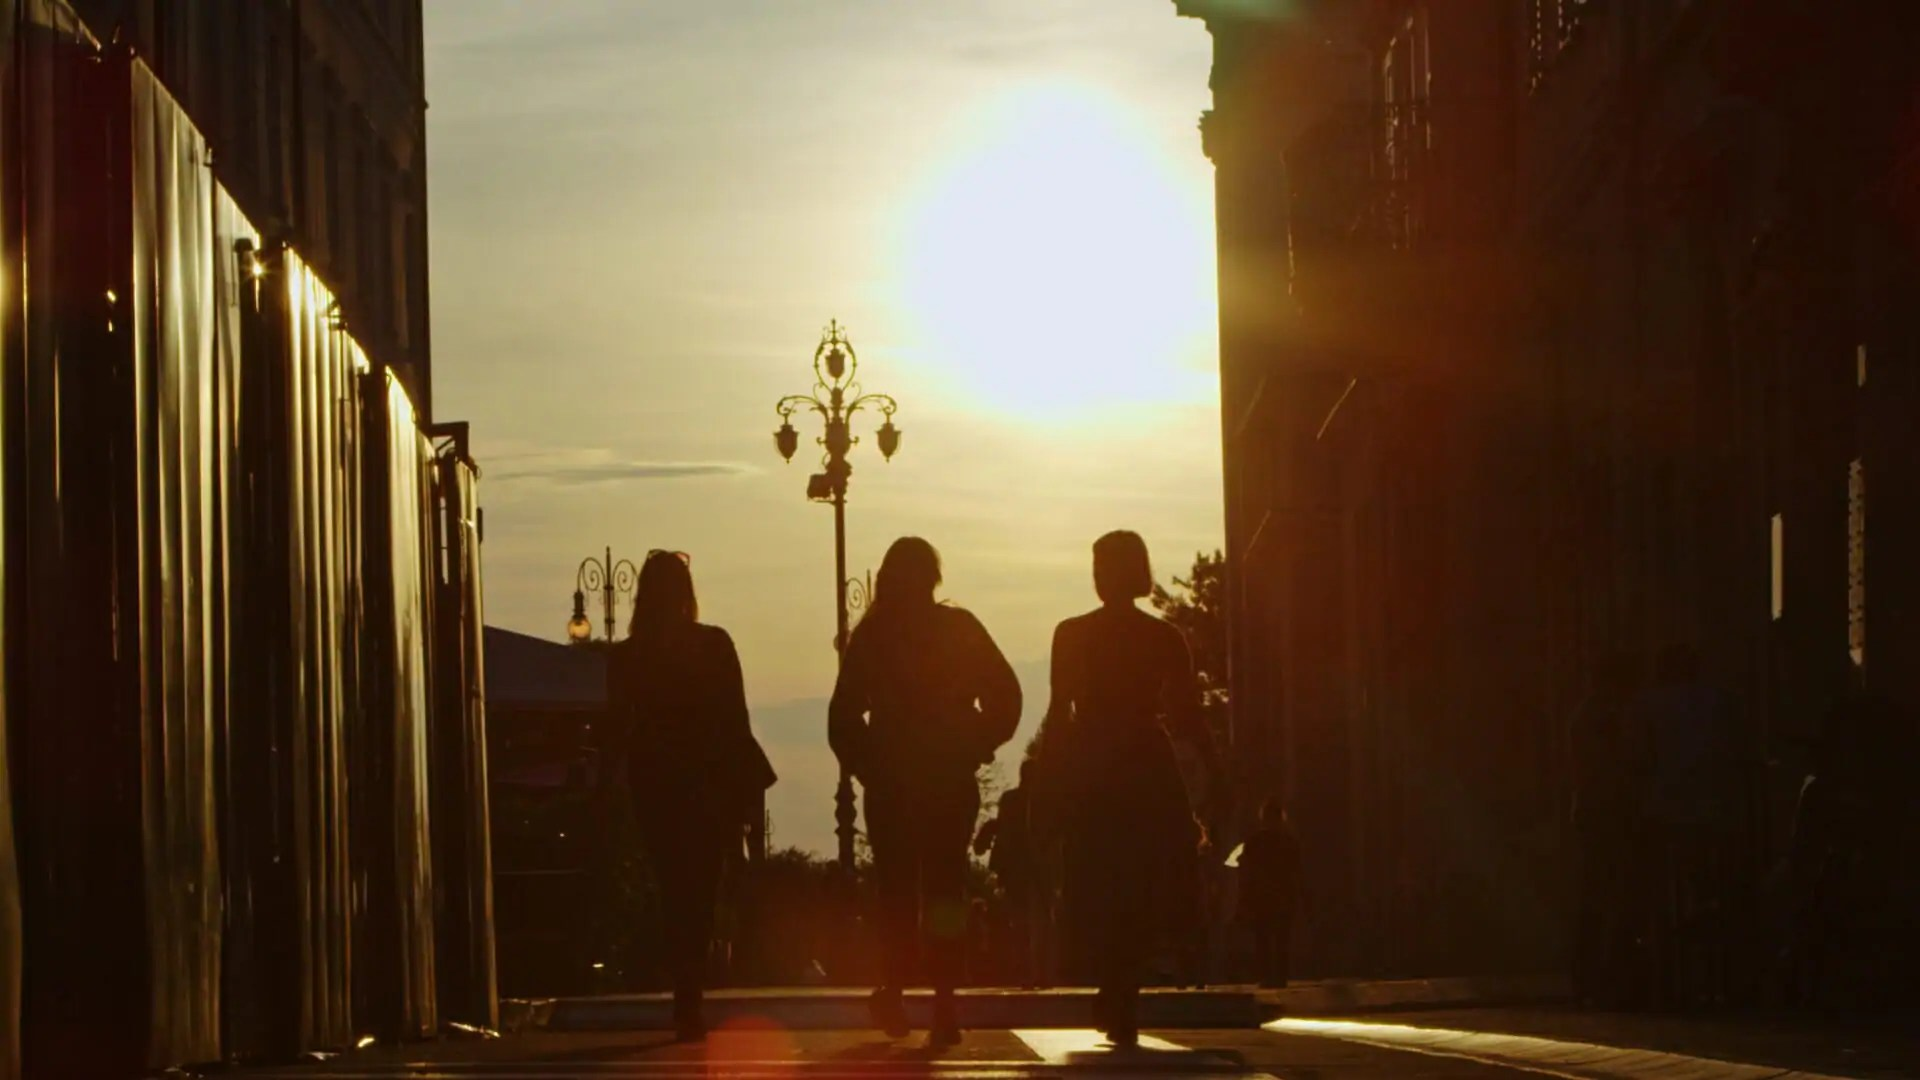 Stills from ESOF 2020 Trieste teaser produced by APZmedia